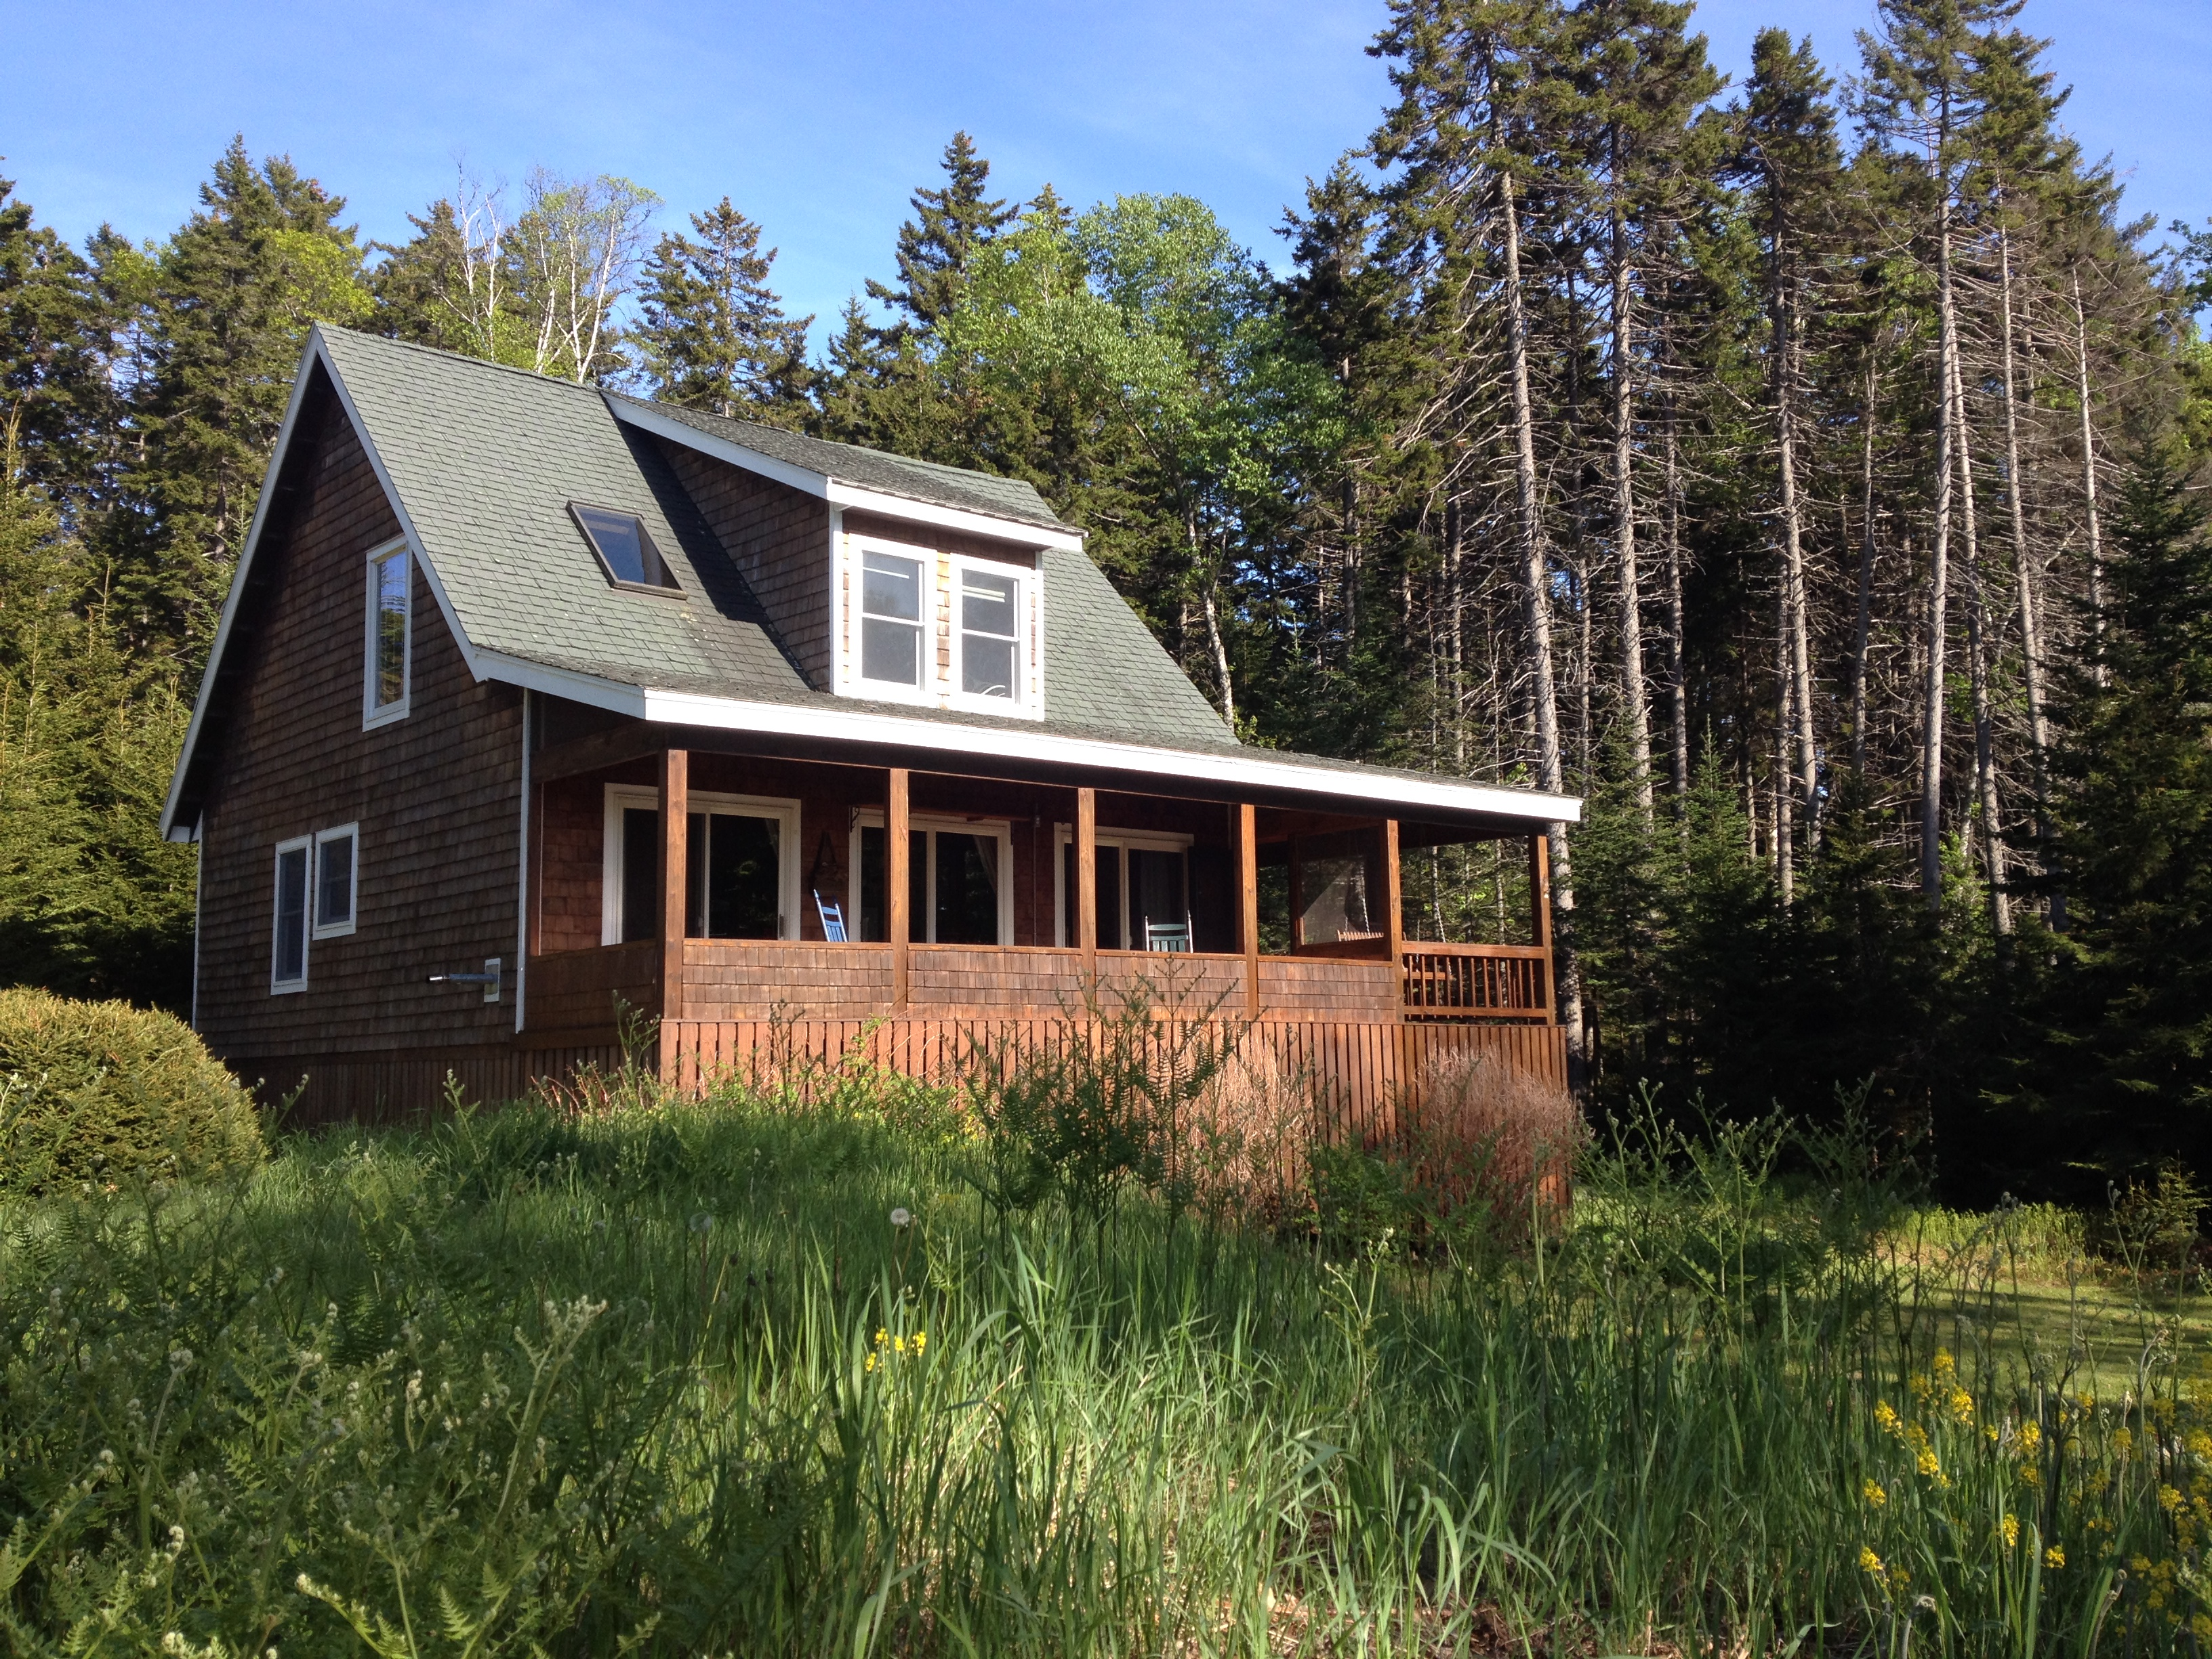 Single Family Home for Sale at Lot 3 Bustins Island Freeport, Maine 04032 United States